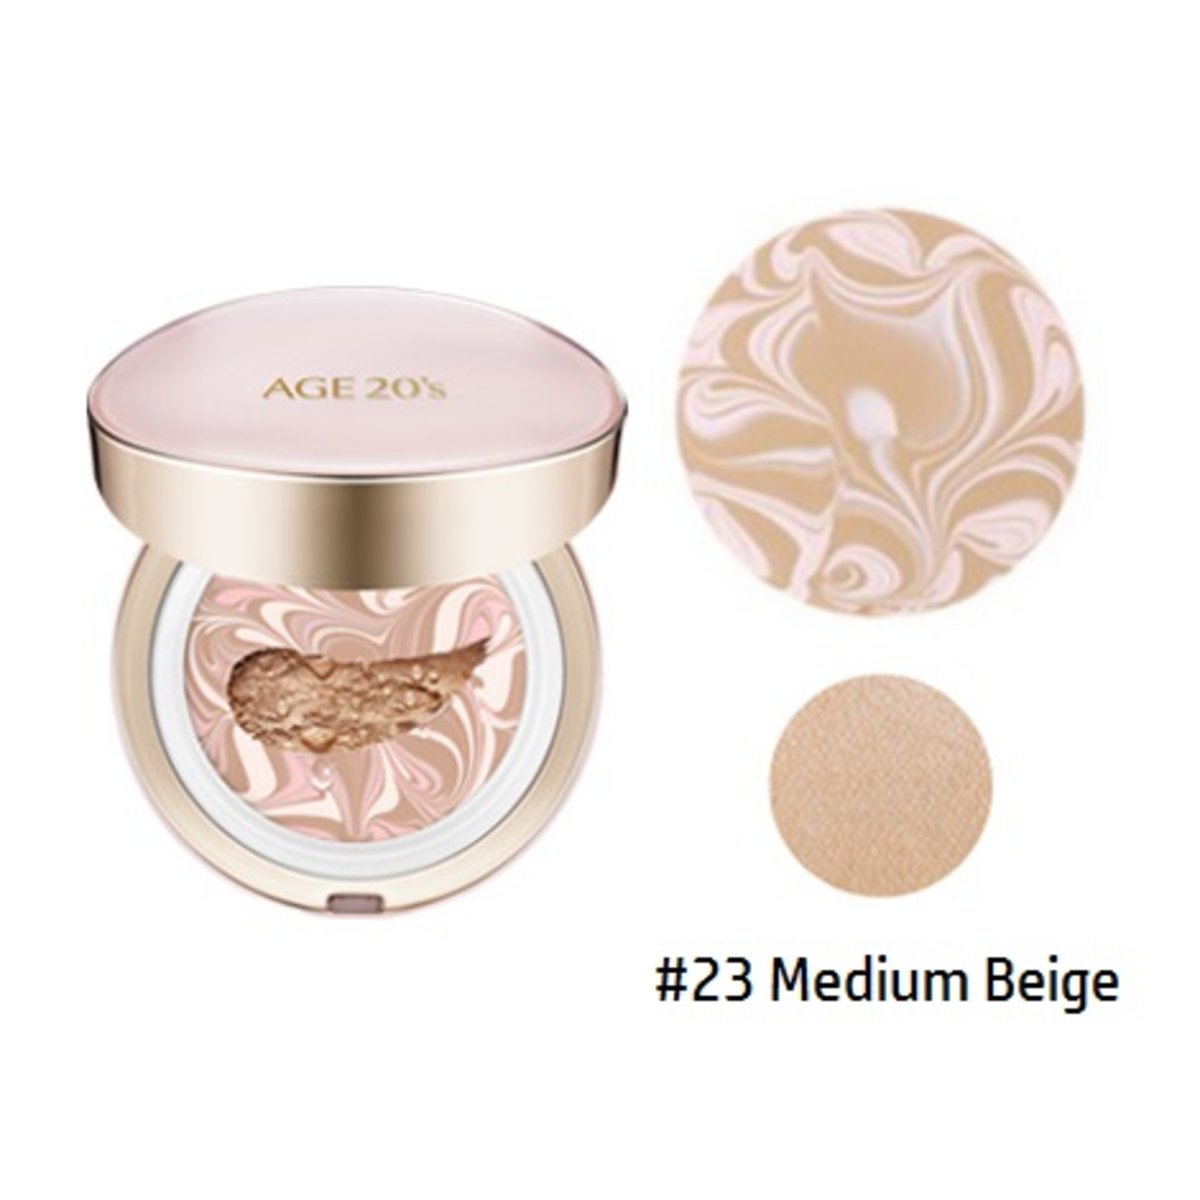 Signature Essence Cover Pact Moisture #23 Medium Beige (14g x2) (8801046306505)